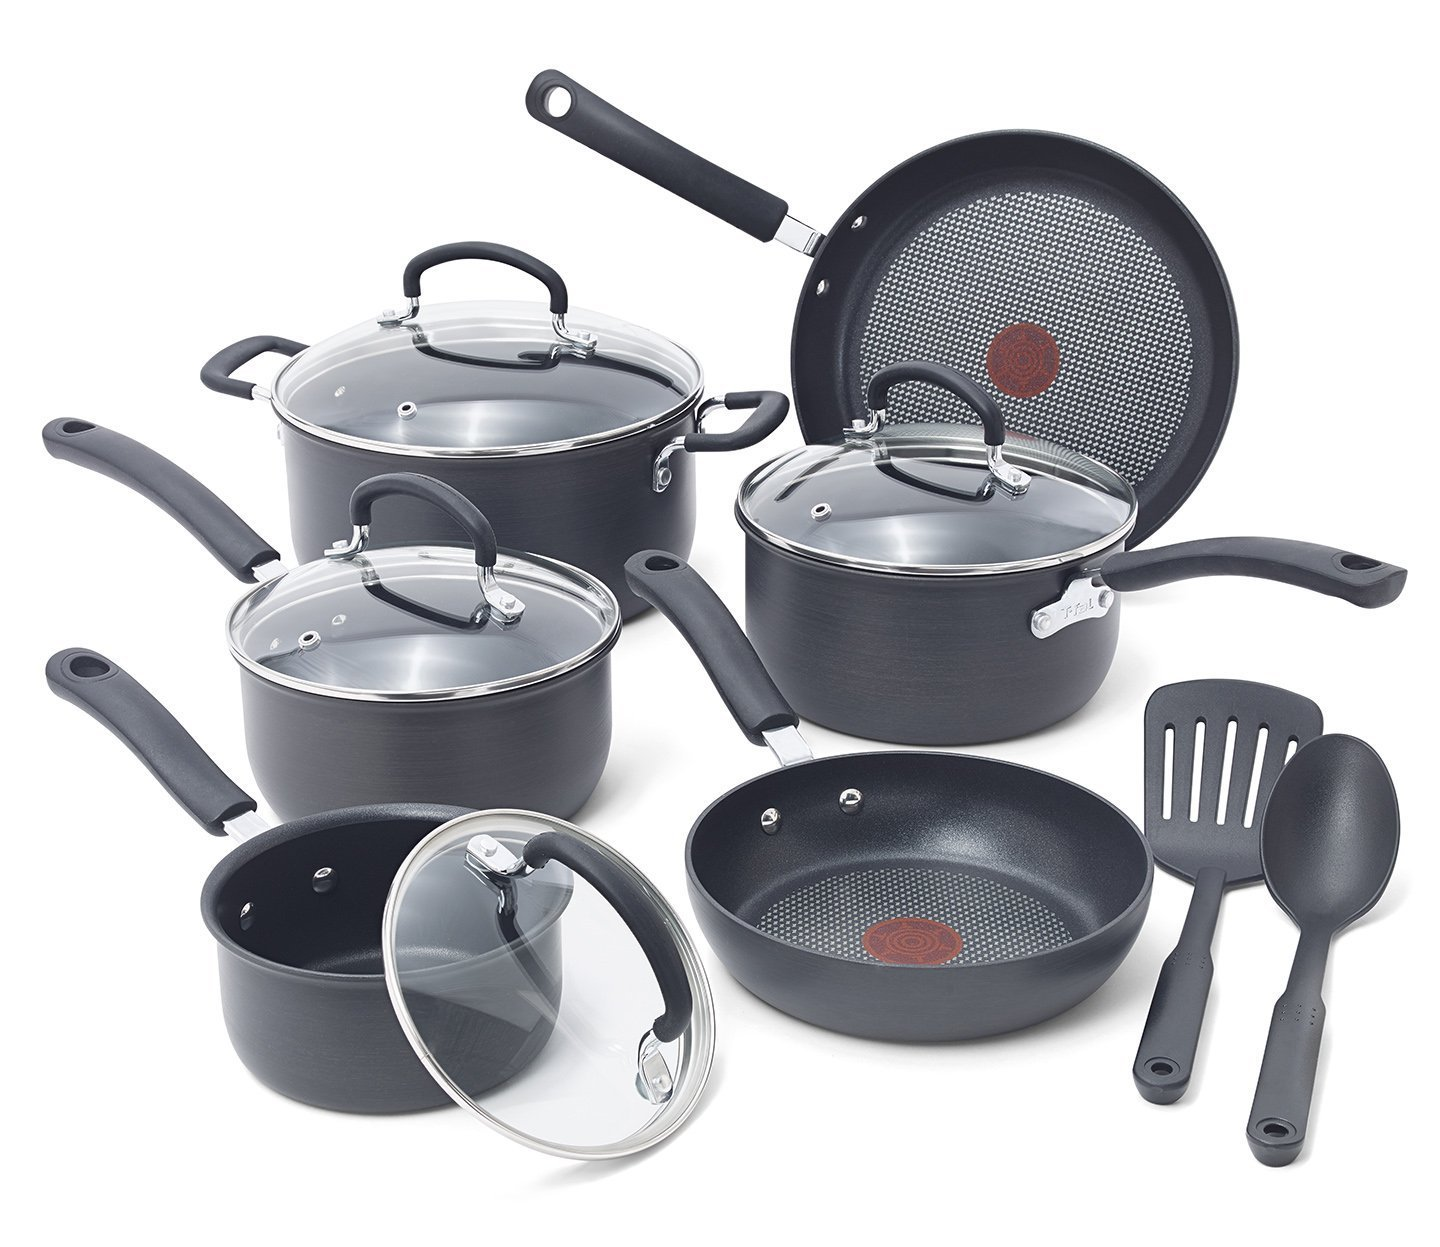 T-fal E765SC Hard Anodized Cookware Set, Nonstick Pots and Pans Set, Thermo-Spot Heat Indicator, 12 Piece, Gray